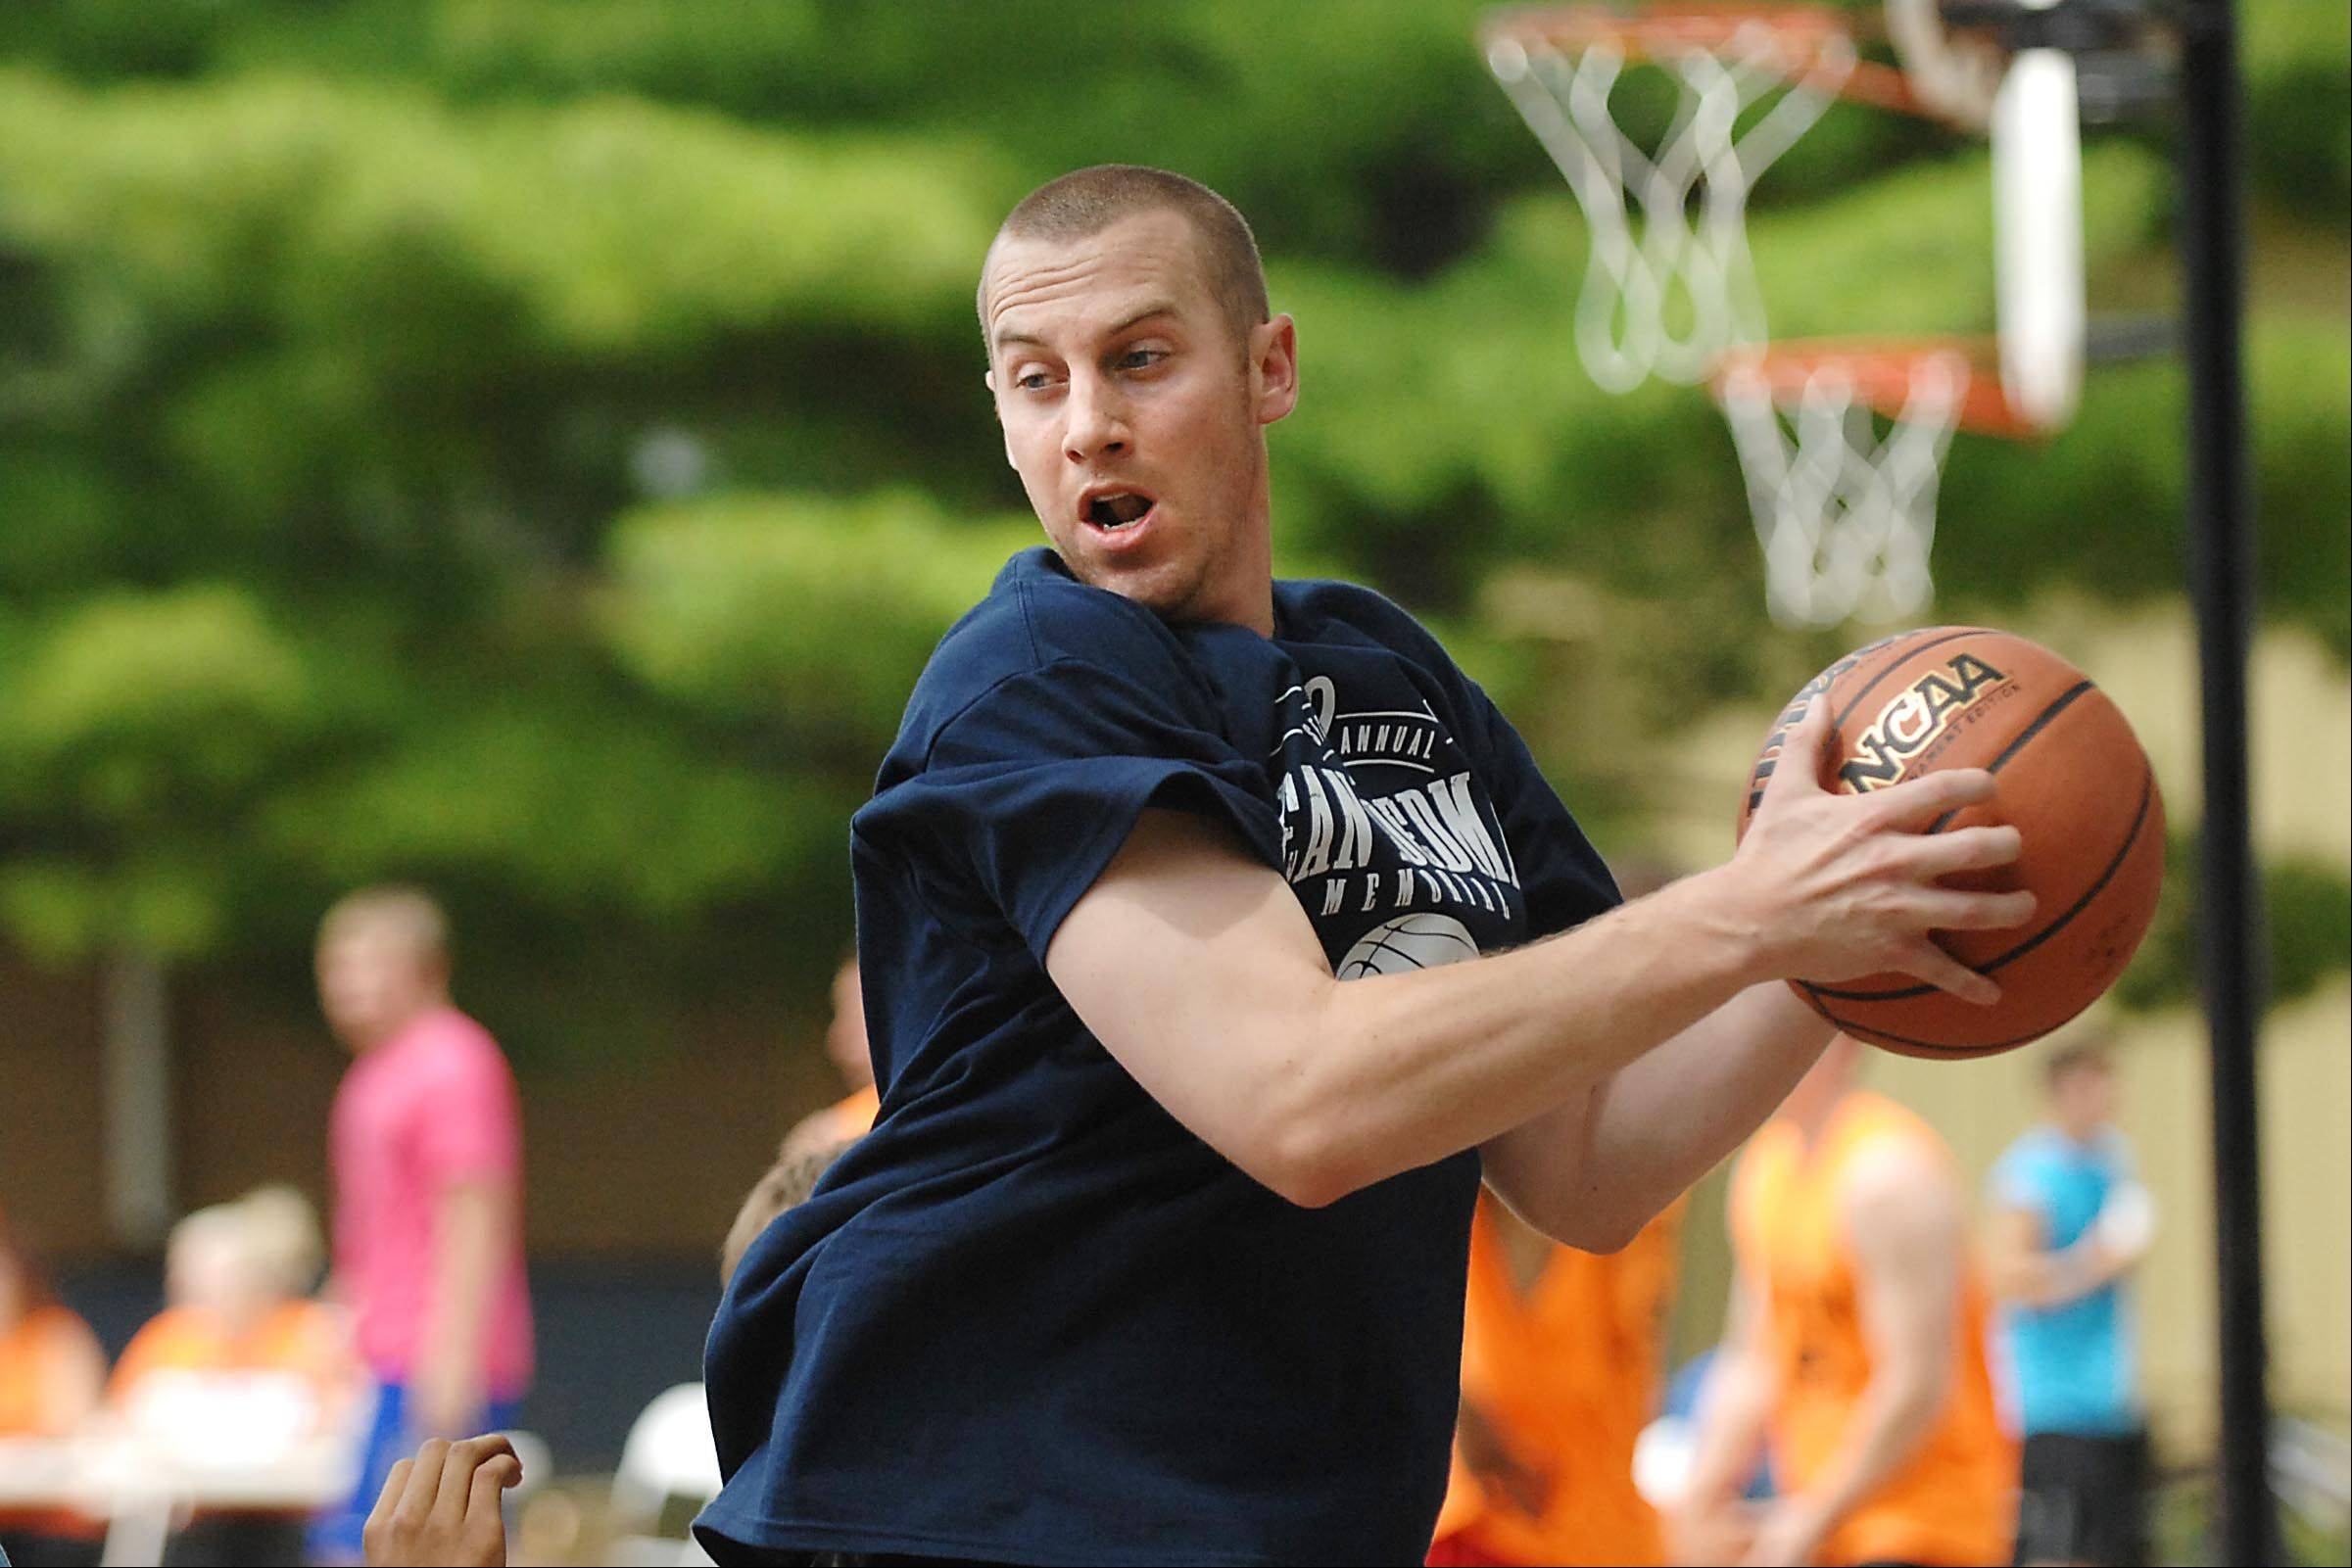 Jim Moran, a former Algonquin Jacobs High School basketball standout, competes with two of his brothers at the second annual Sean Toedman Memorial 3-on-3 Basketball Tournament at Lions Park in East Dundee. Teams competed and raised money Sunday to benefit St. Jude Children's Research Hospital in Memphis.